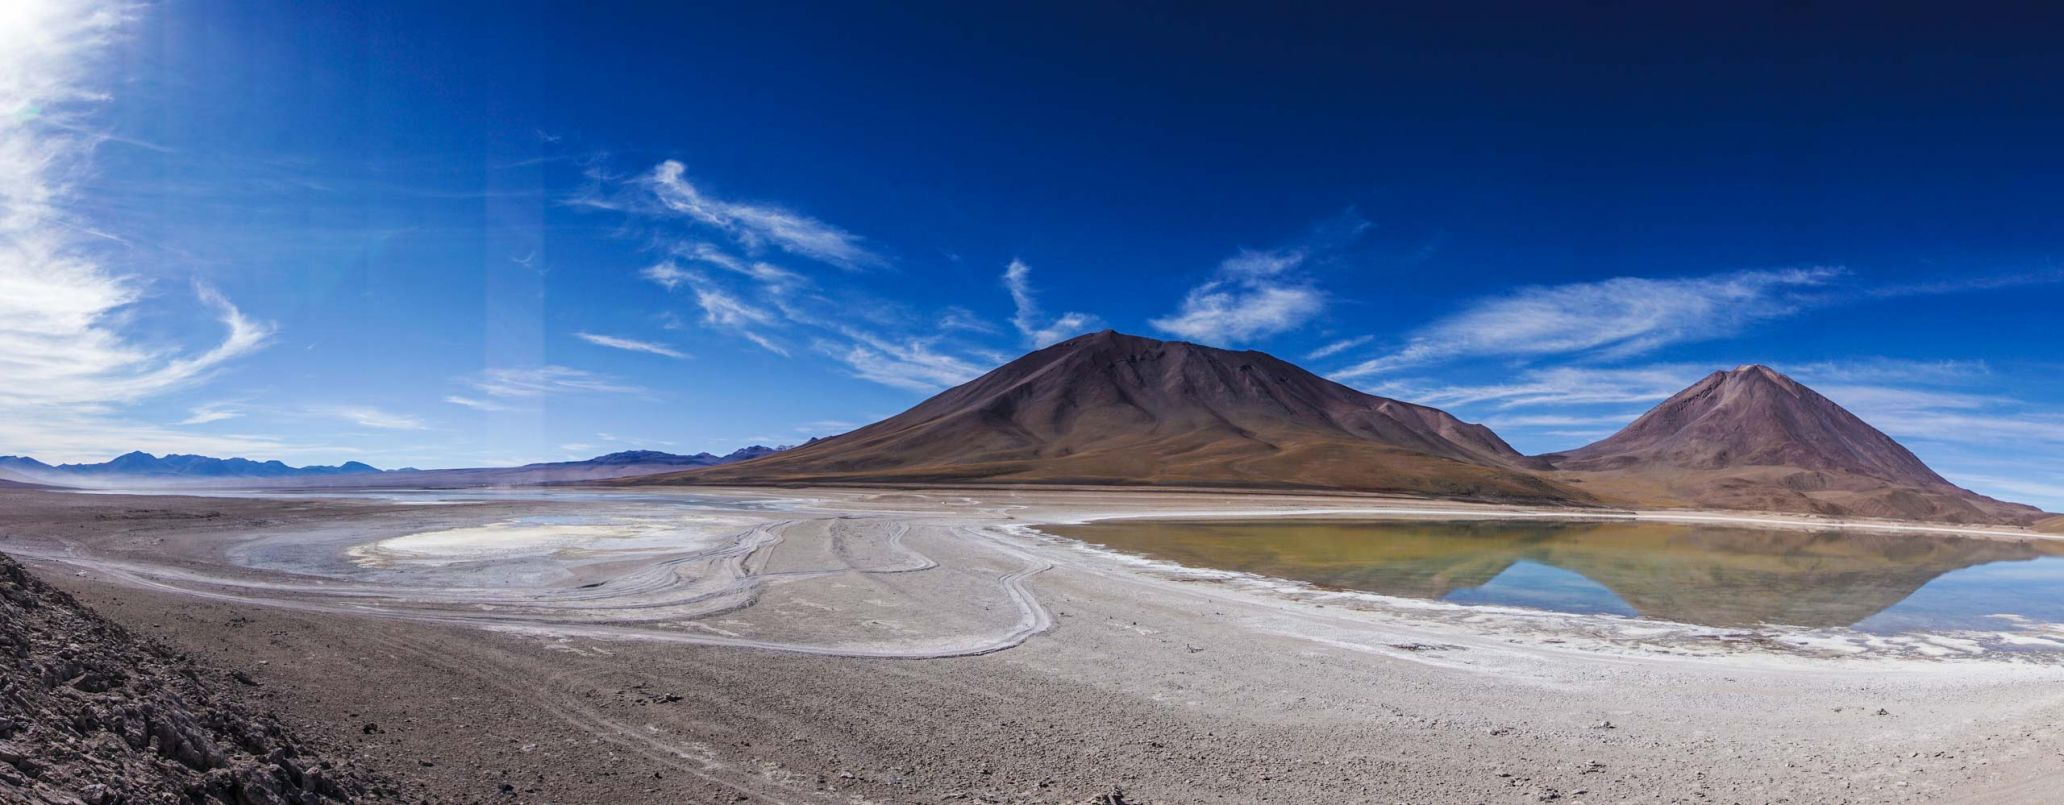 A volcano in a landscape in Bolivia, my last stop around the world